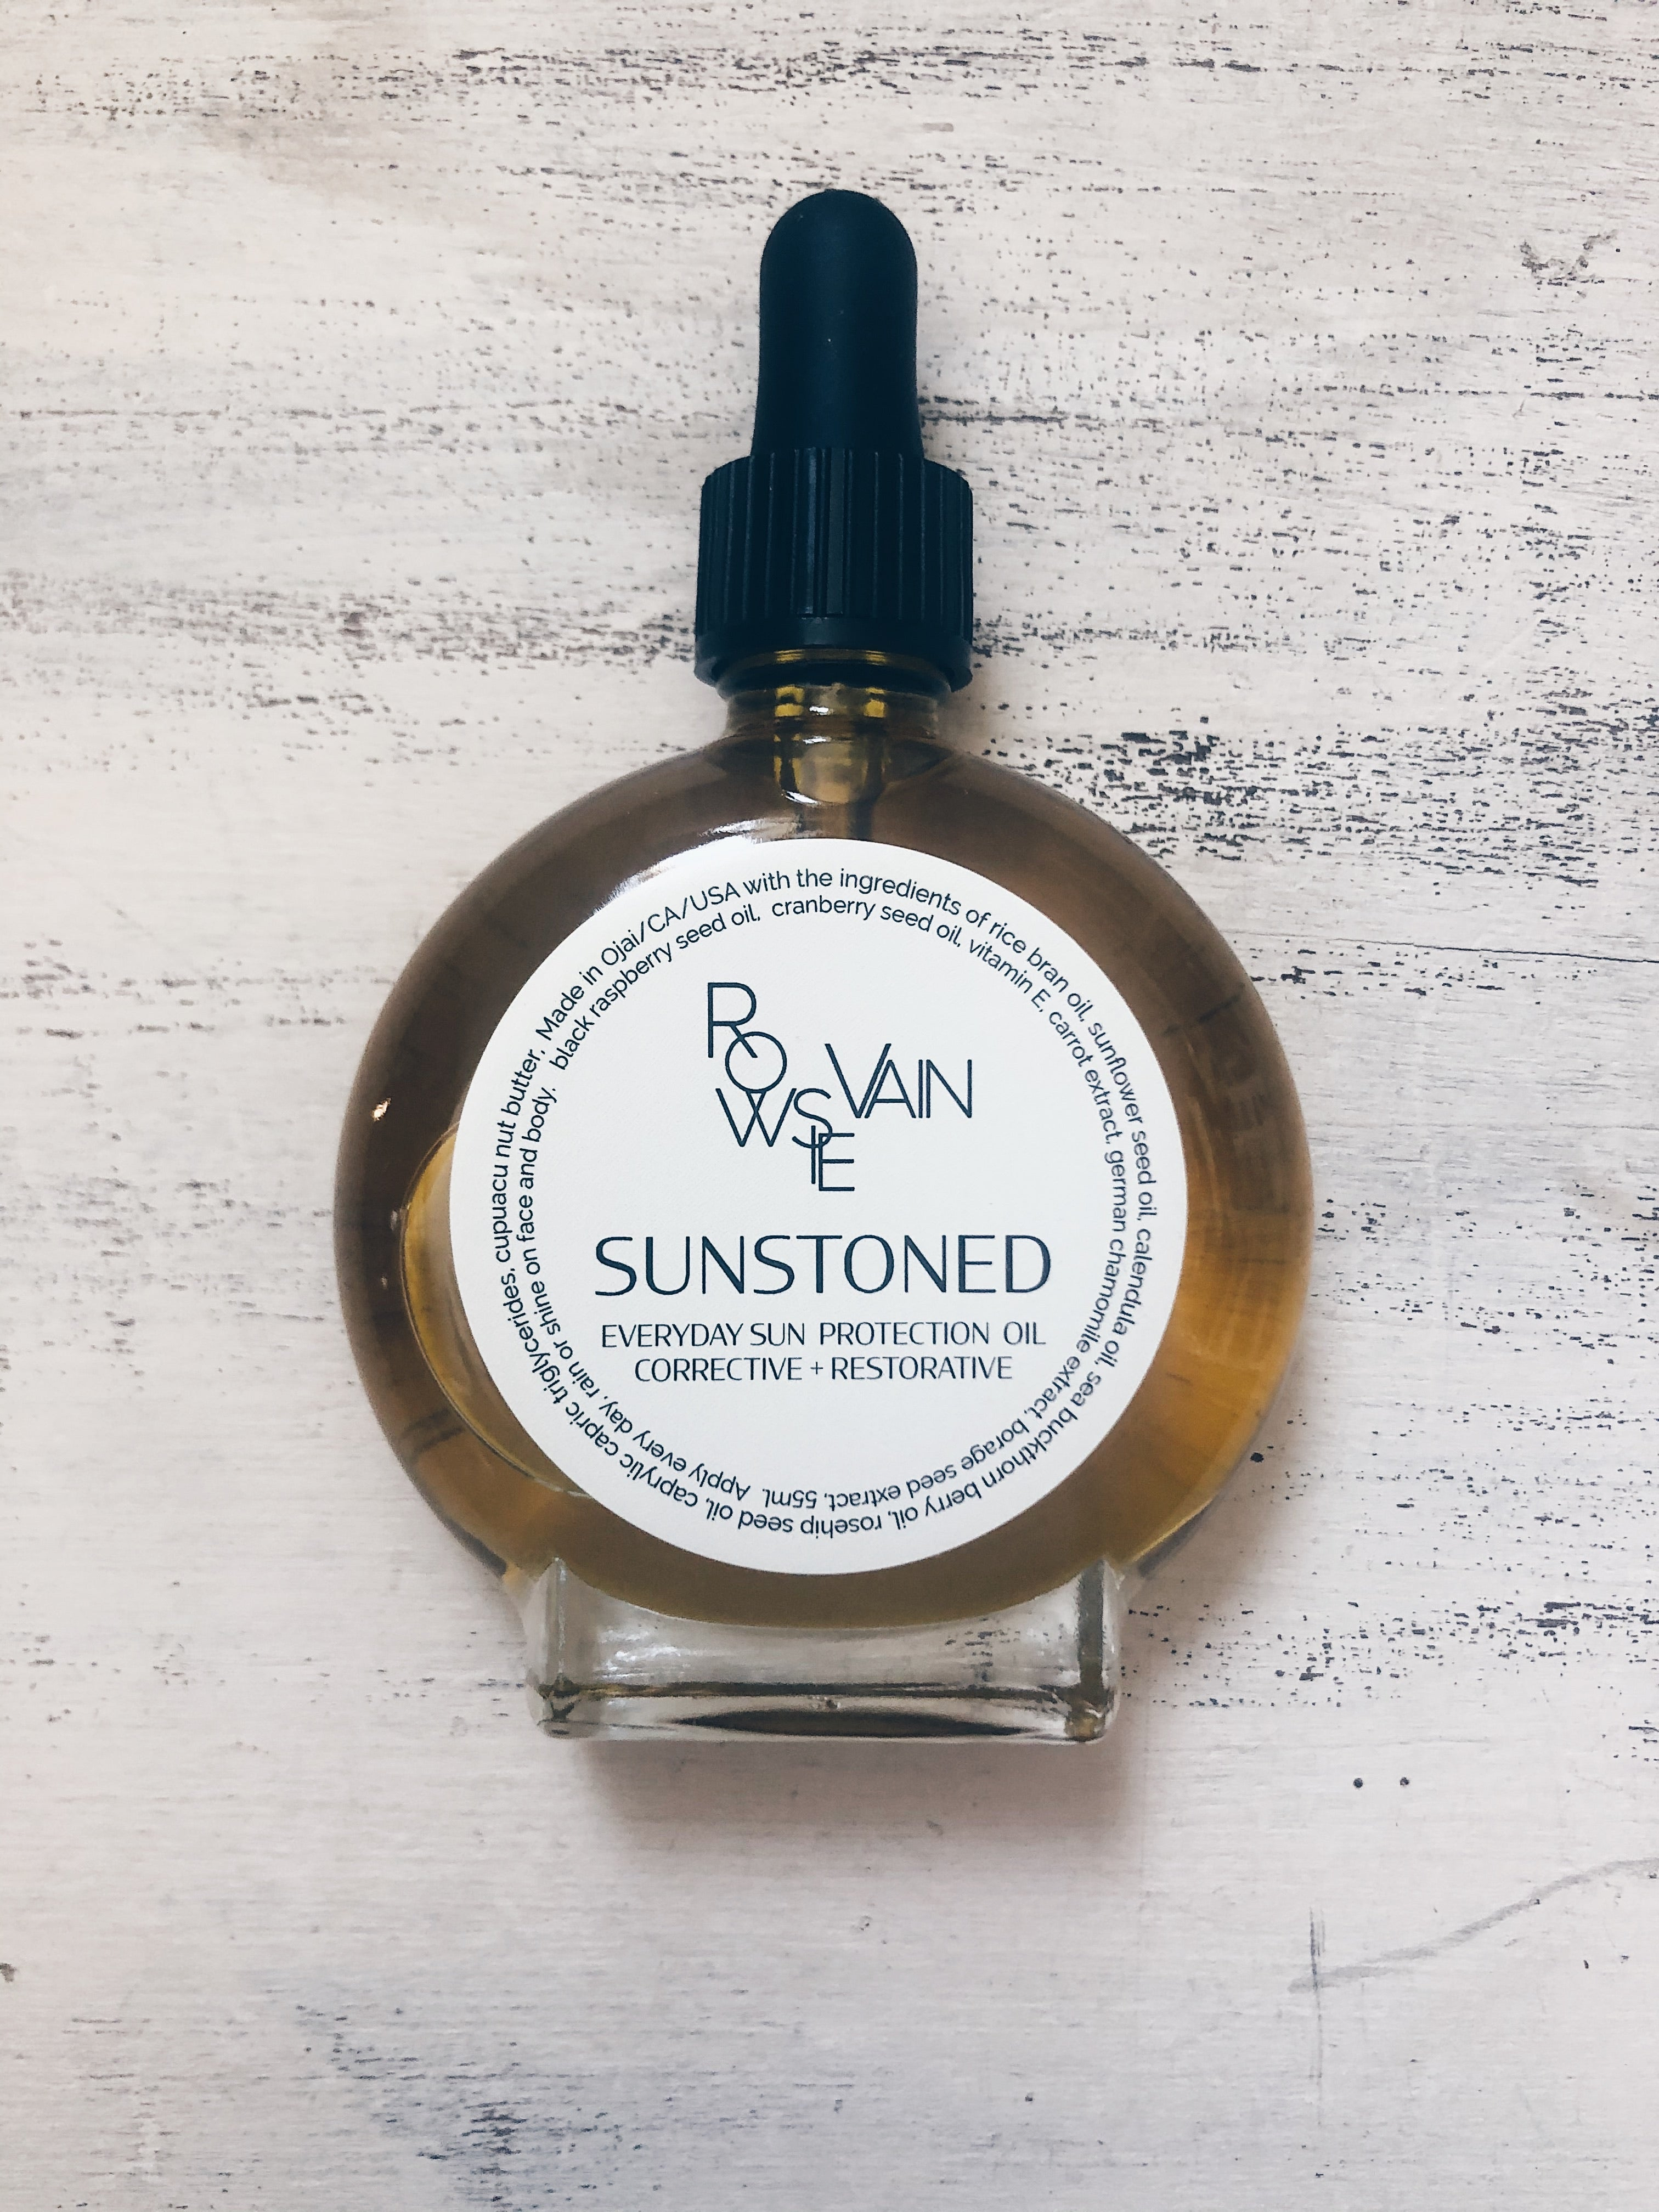 Sunstoned Protection + Correction Oil